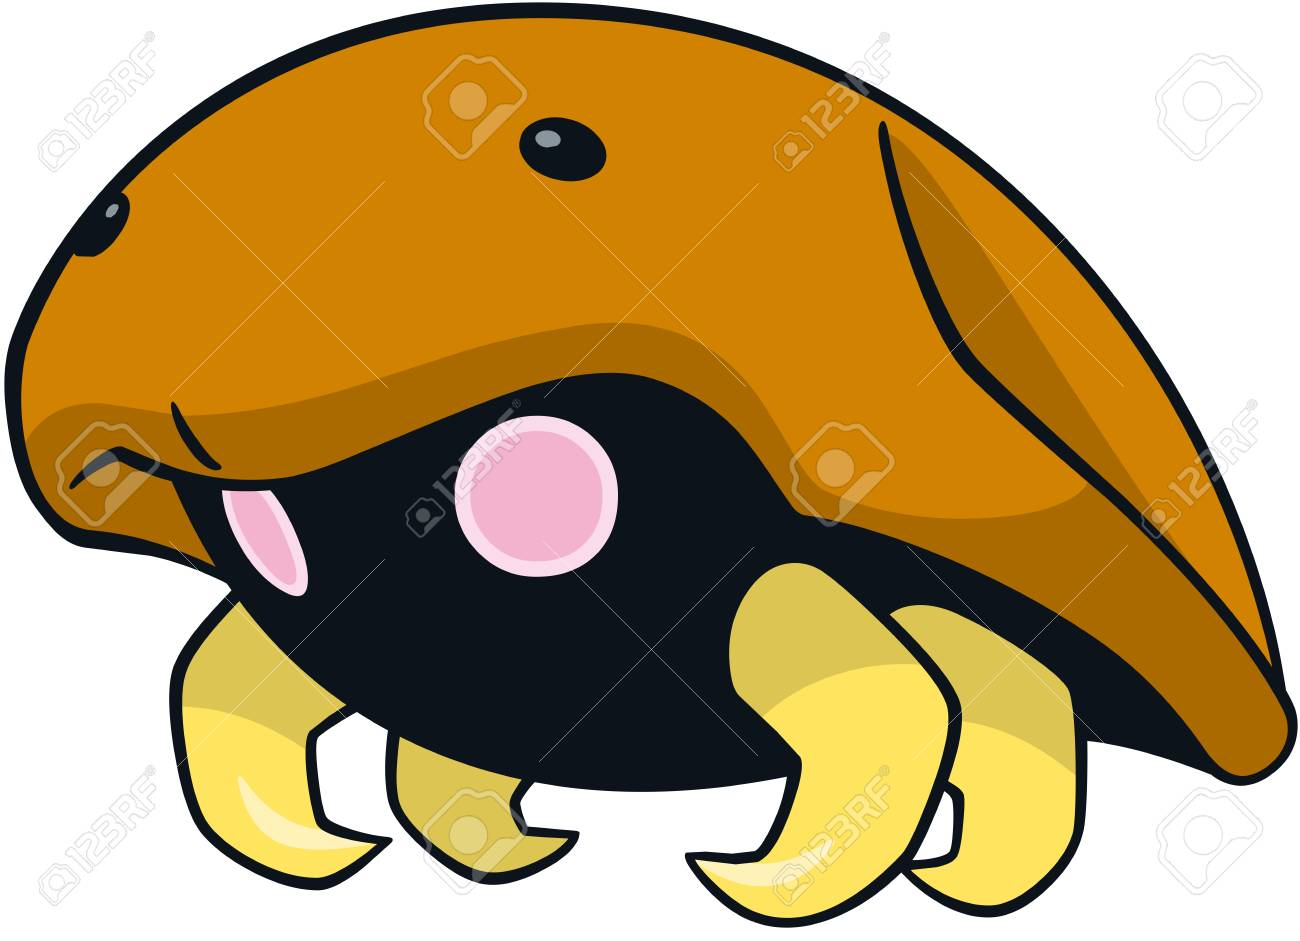 81093436-kabuto-illustration-pokemon-go-